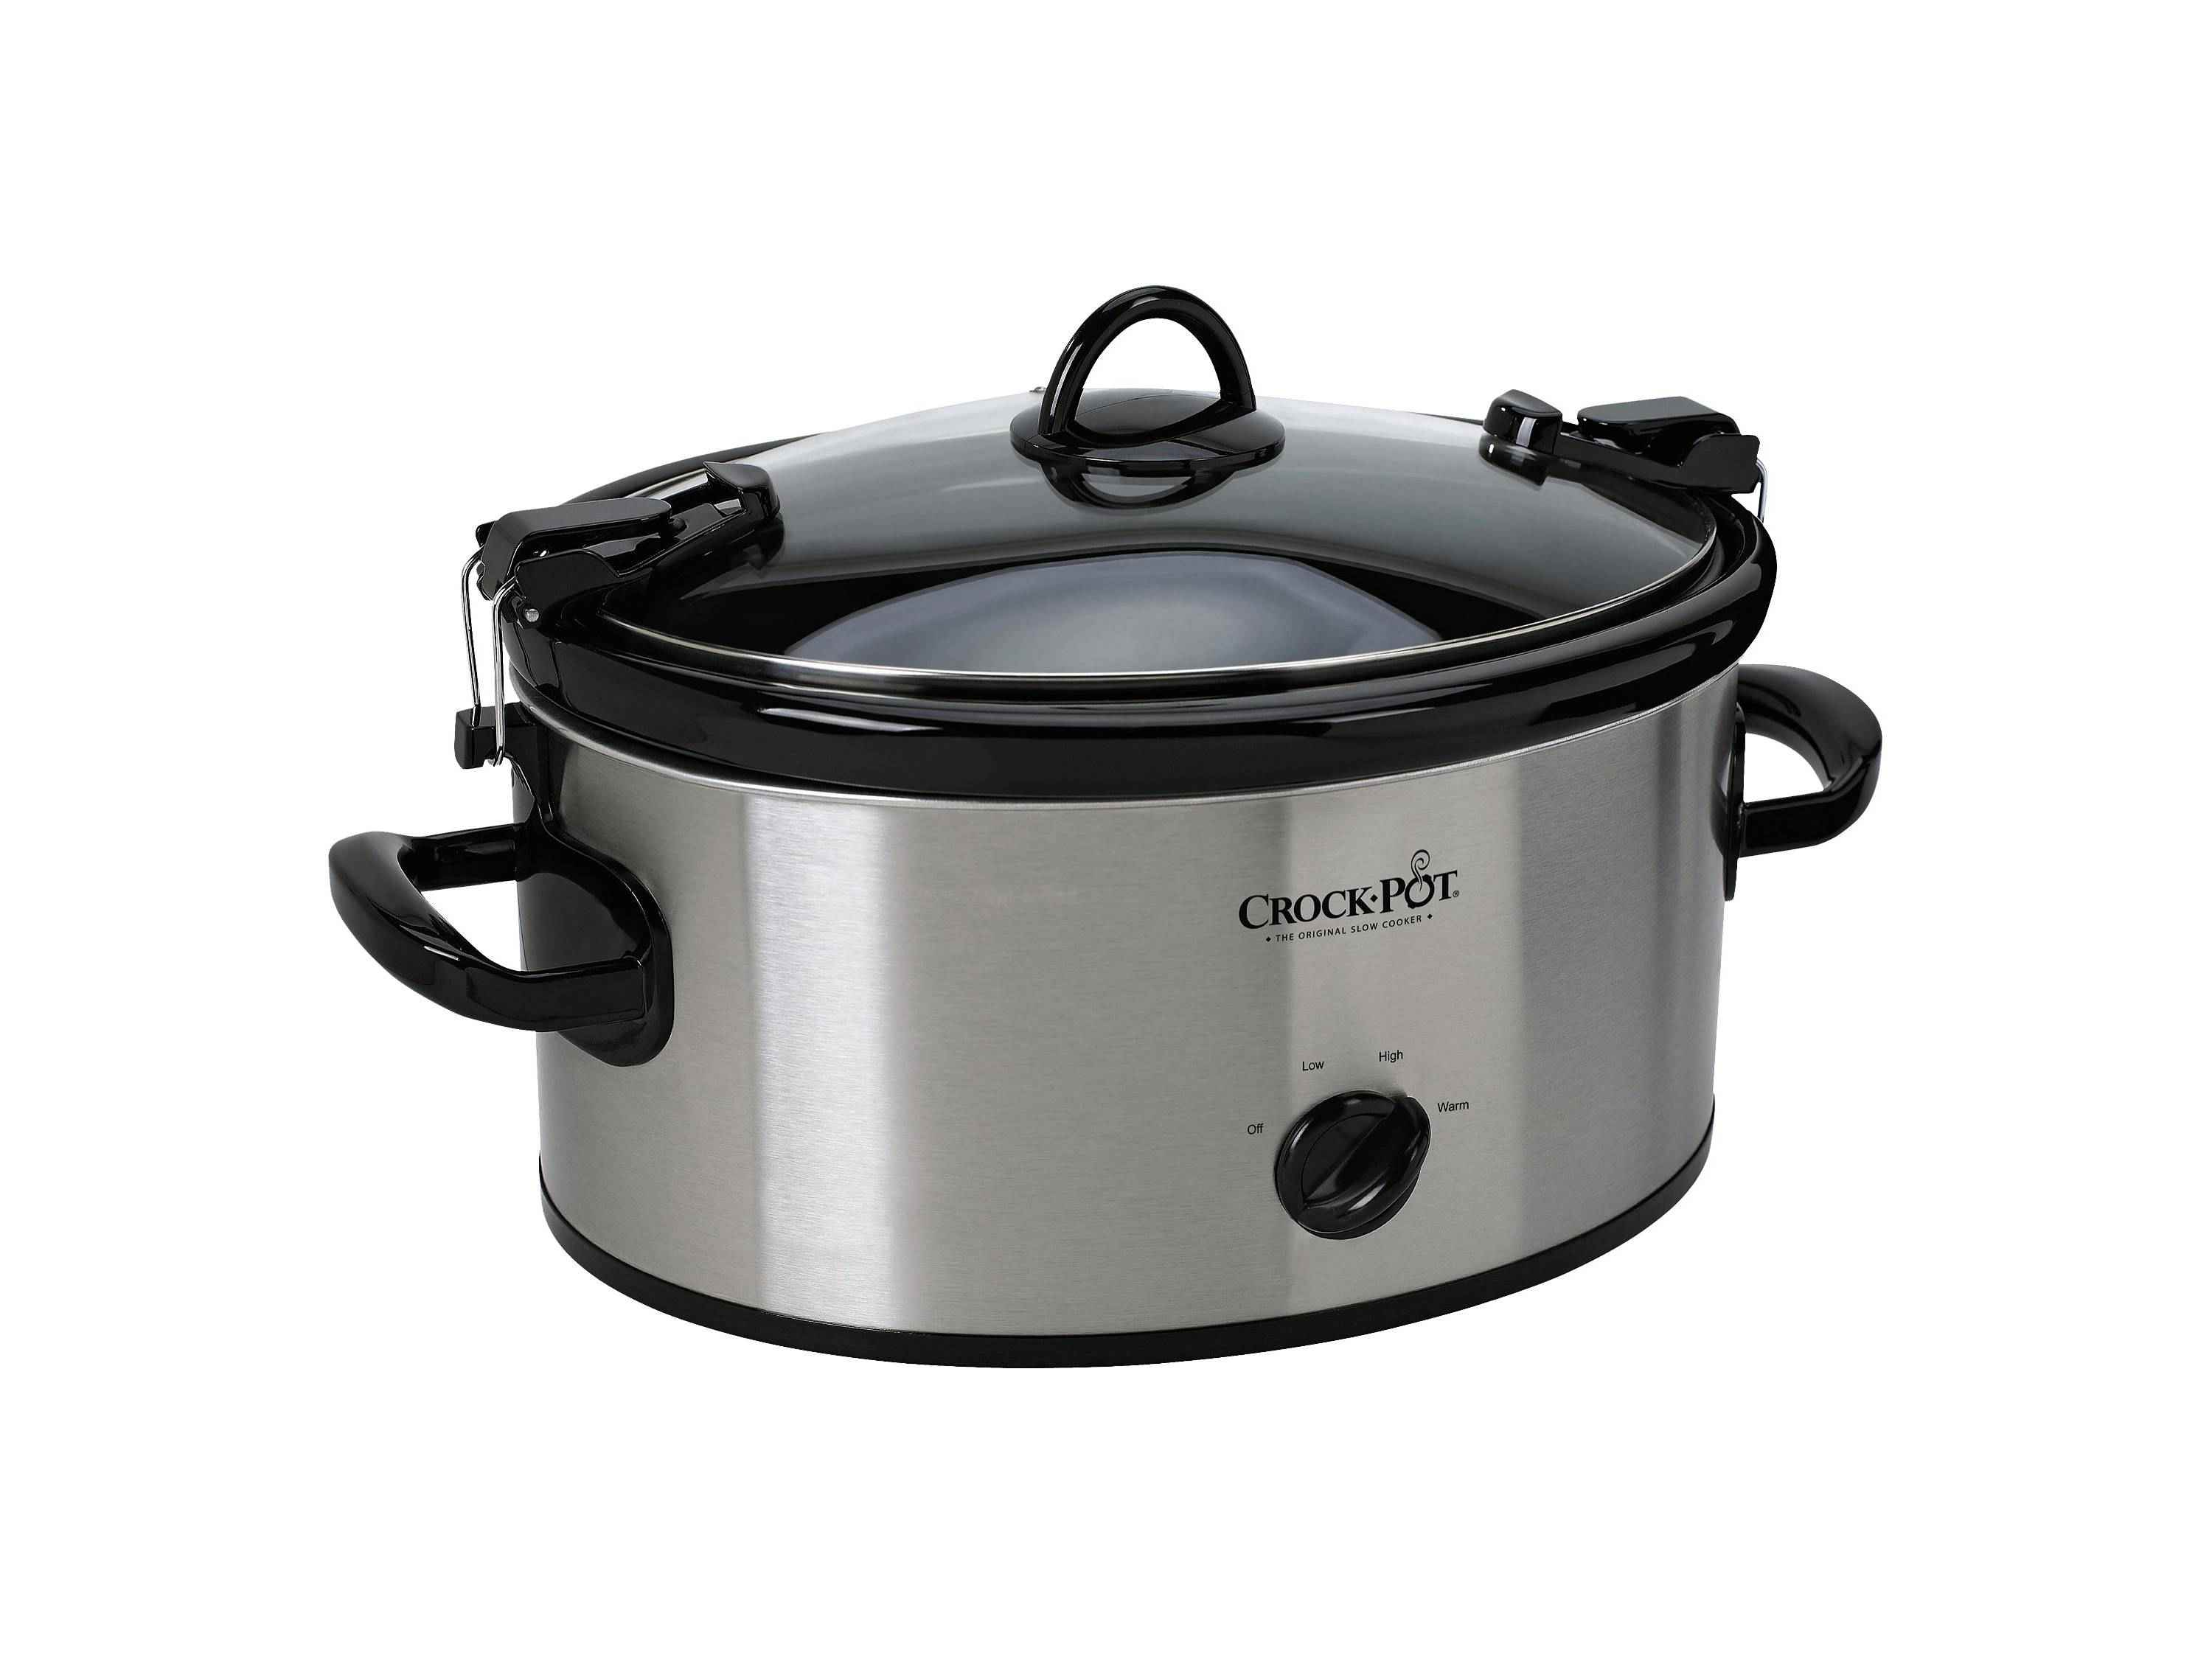 Best Budget Crock Pot 6 Quart Cook Carry Oval Manual Portable